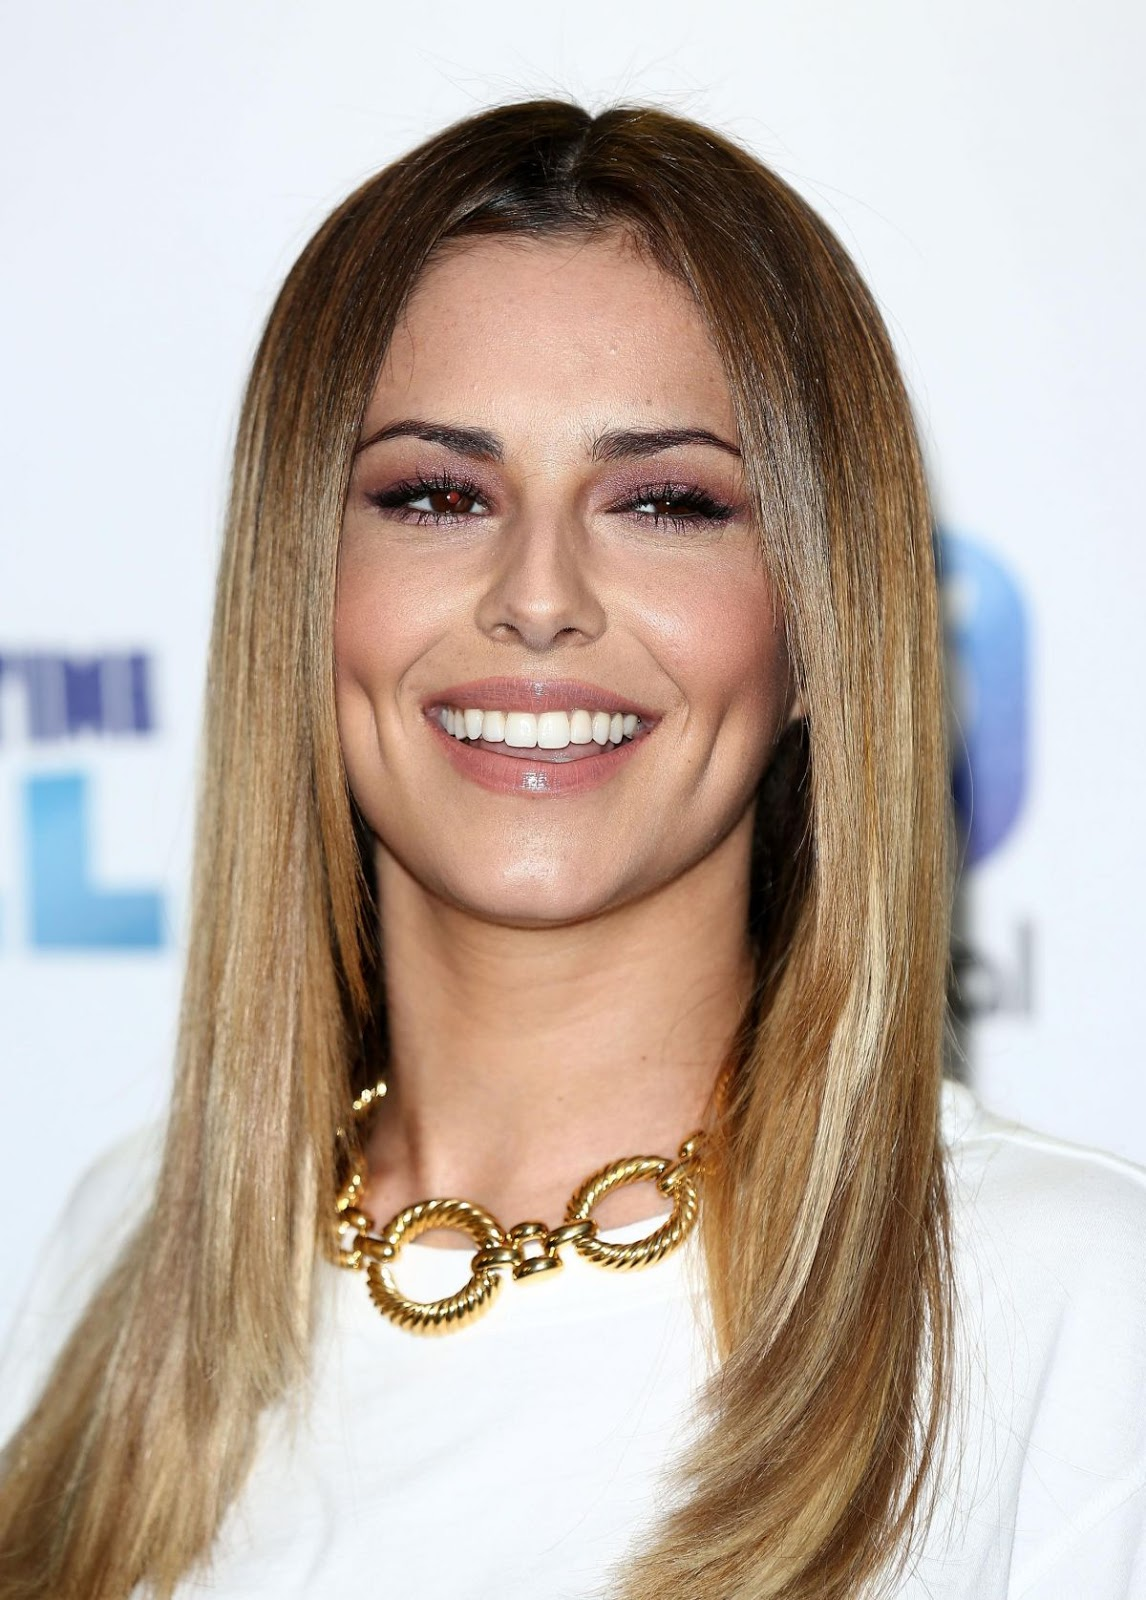 Cheryl Cole At Capital Summertime Ball In London